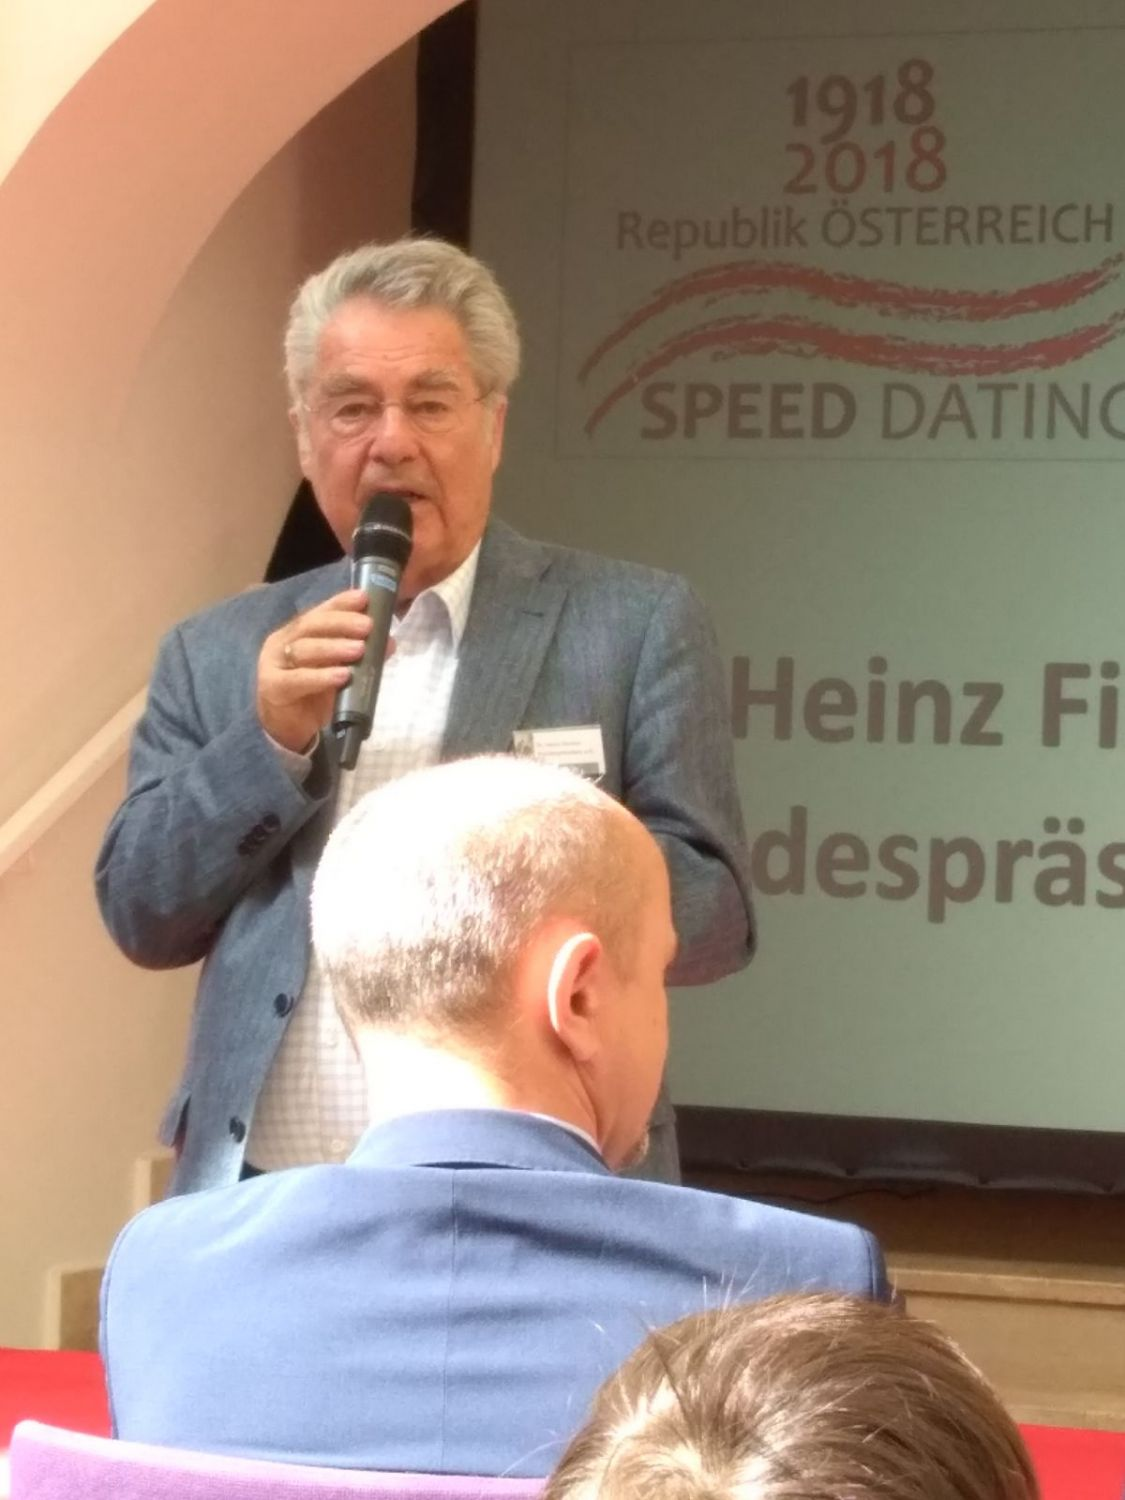 Speed dating 100 Jahre Republik (3).jpeg